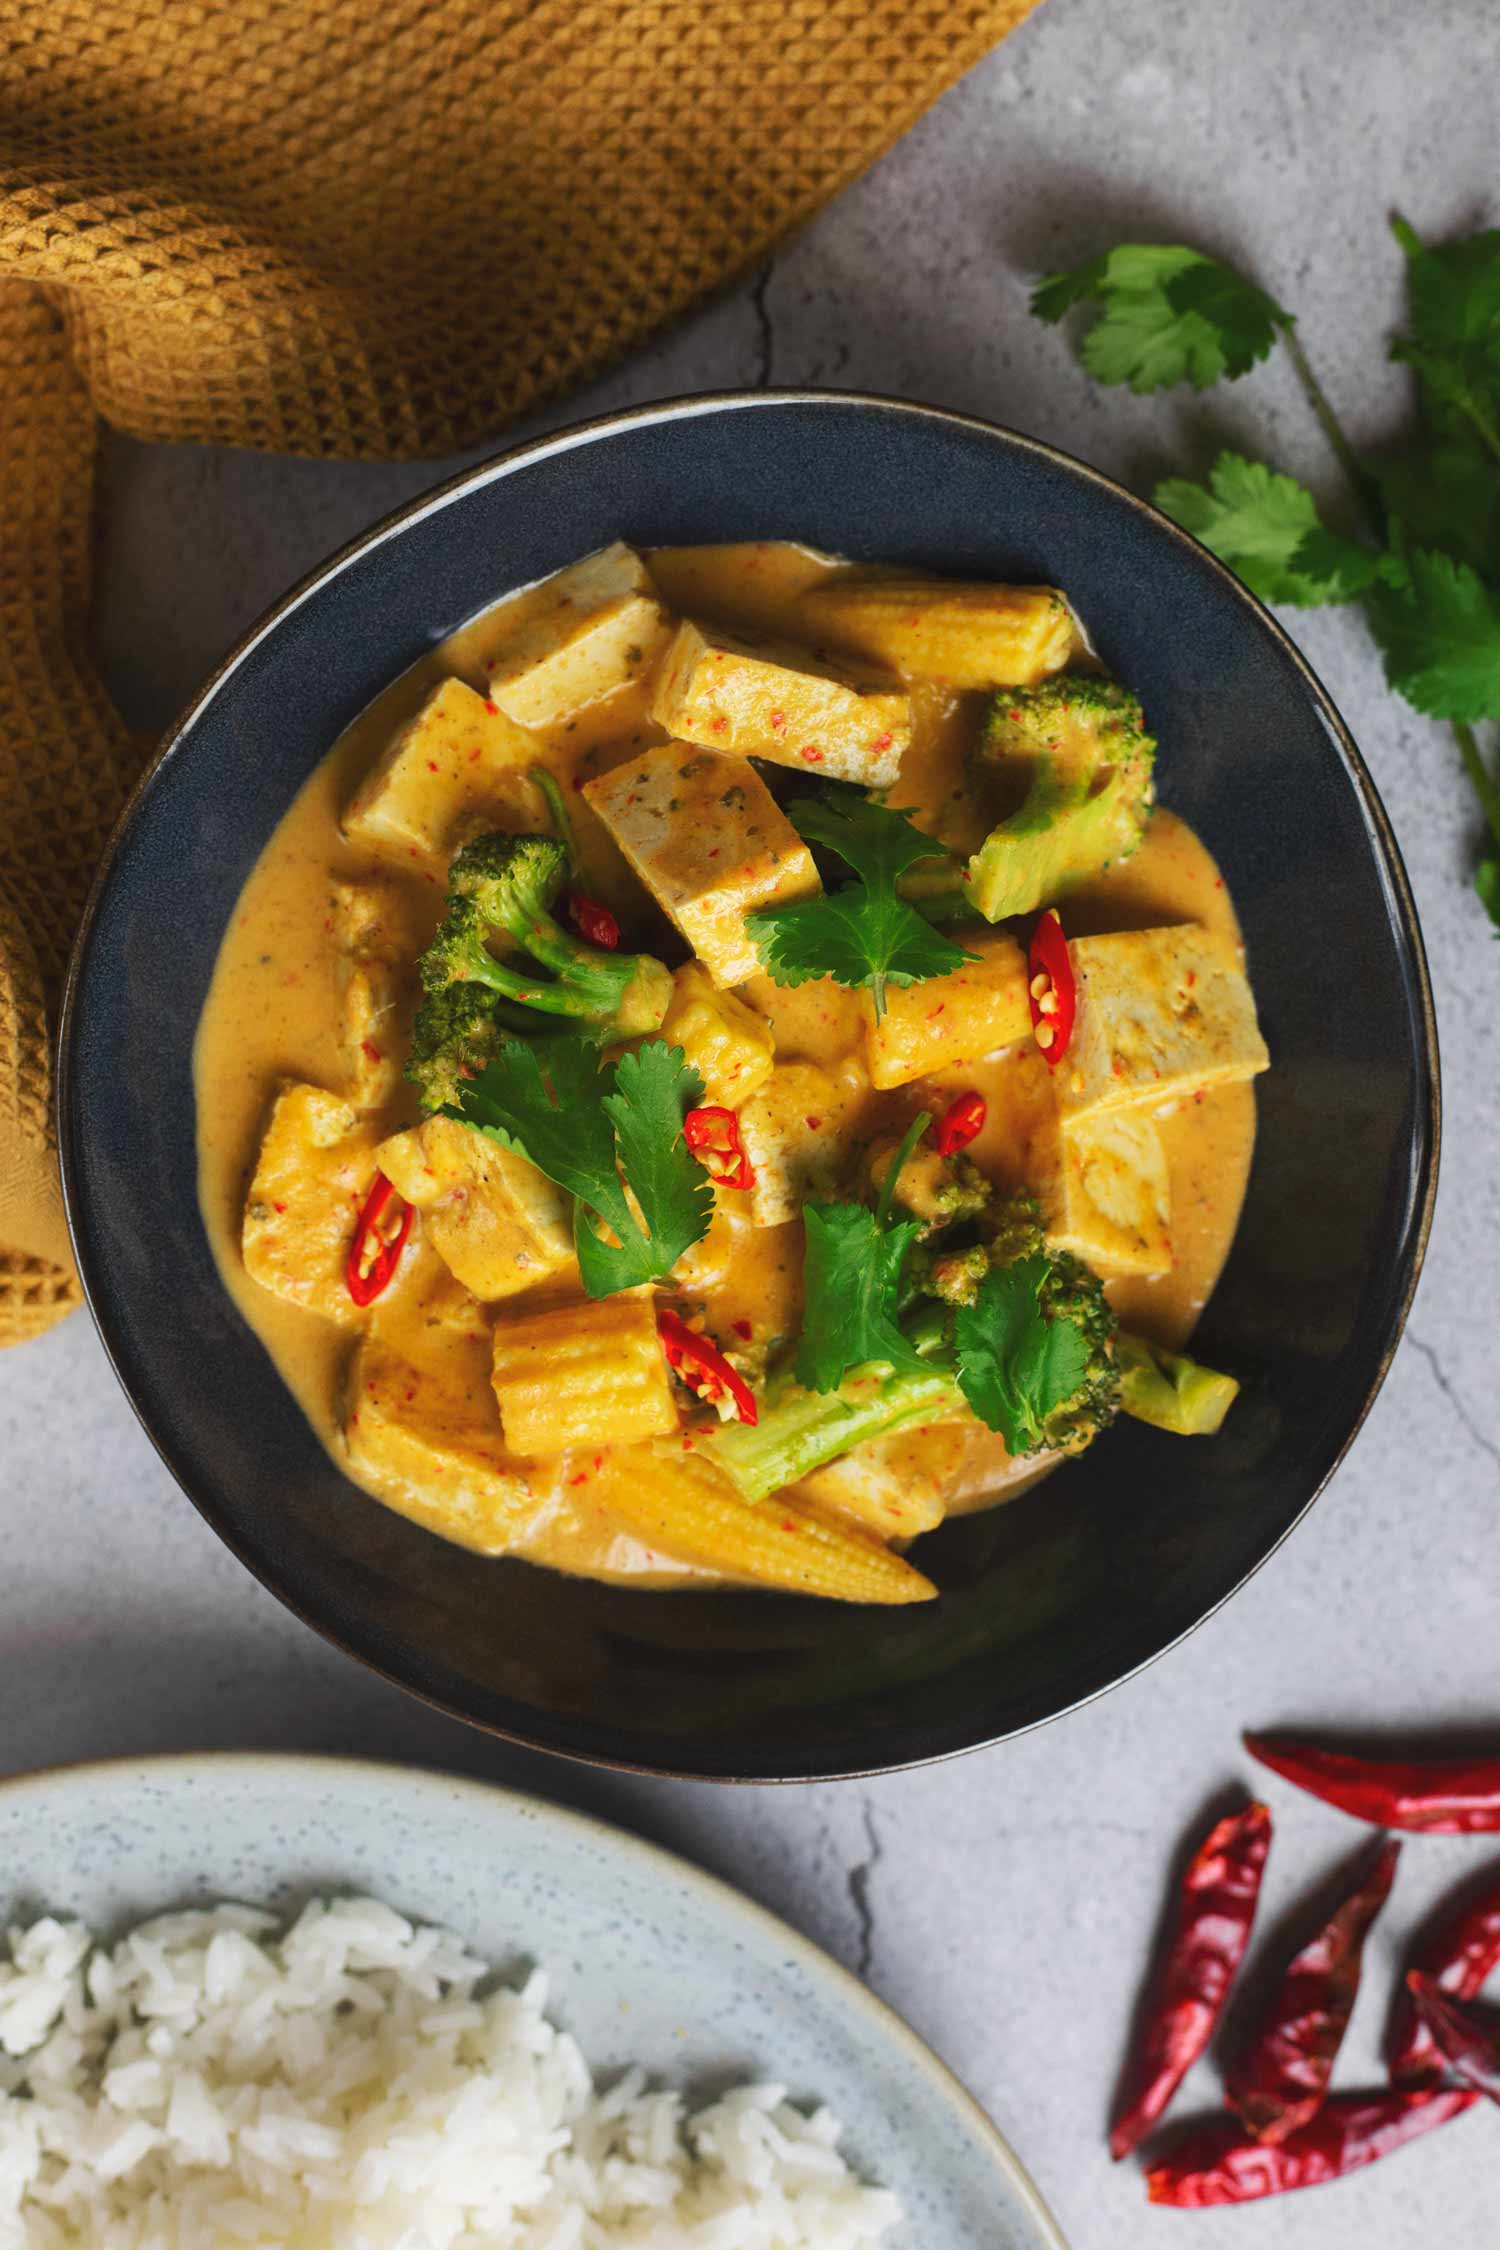 A bowl of Thai red curry with tofu and vegetables